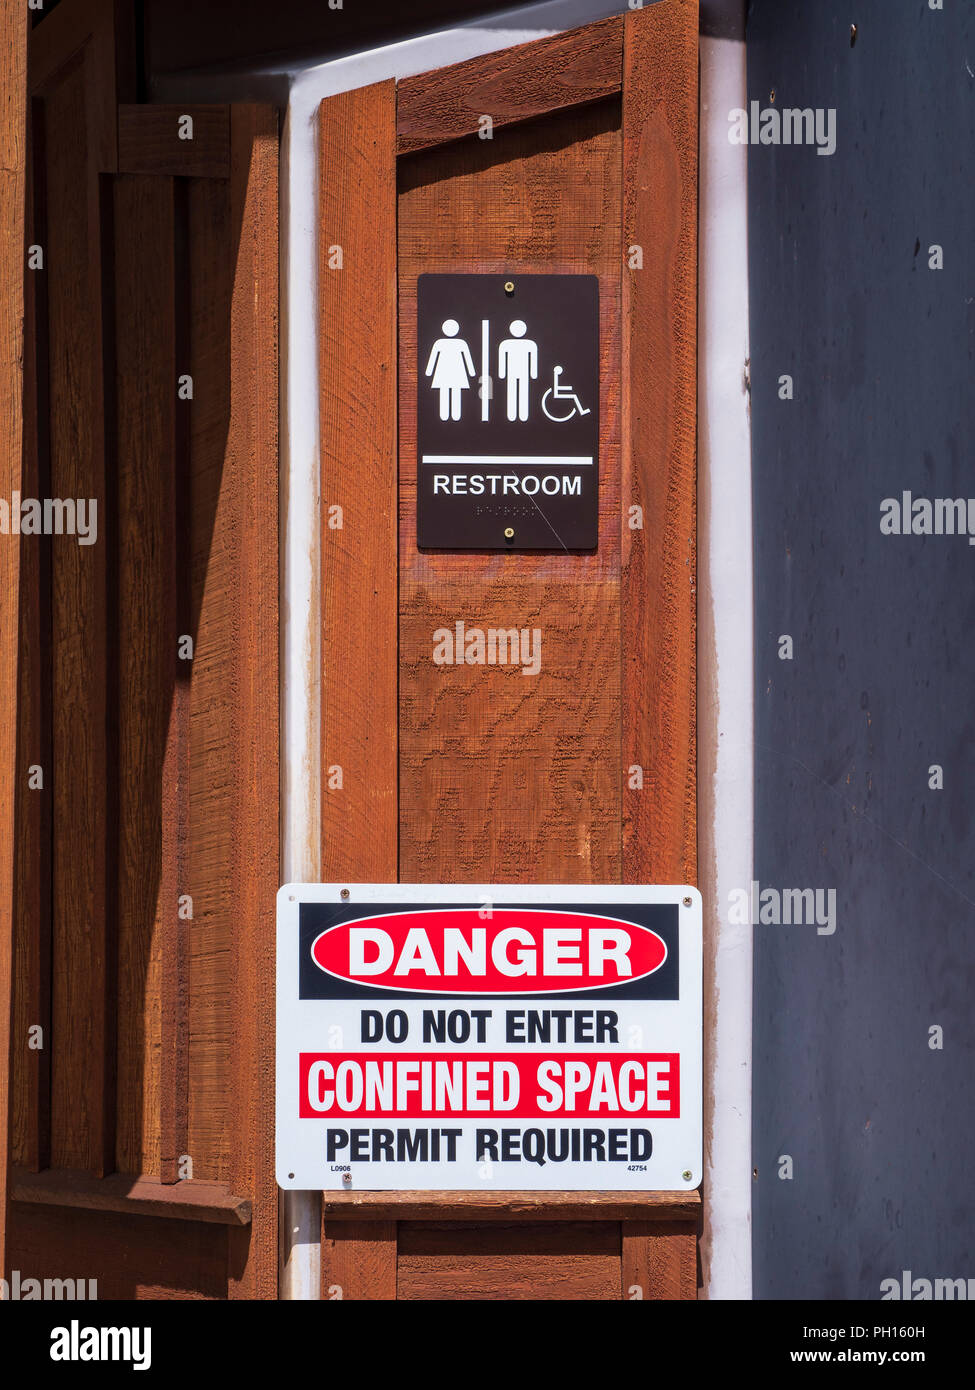 Danger Do Not Enter Confined Space warning on pit toilet, Hornbek Homestead, Florissant Fossil Beds National Monument, Florissant, Colorado - Stock Image